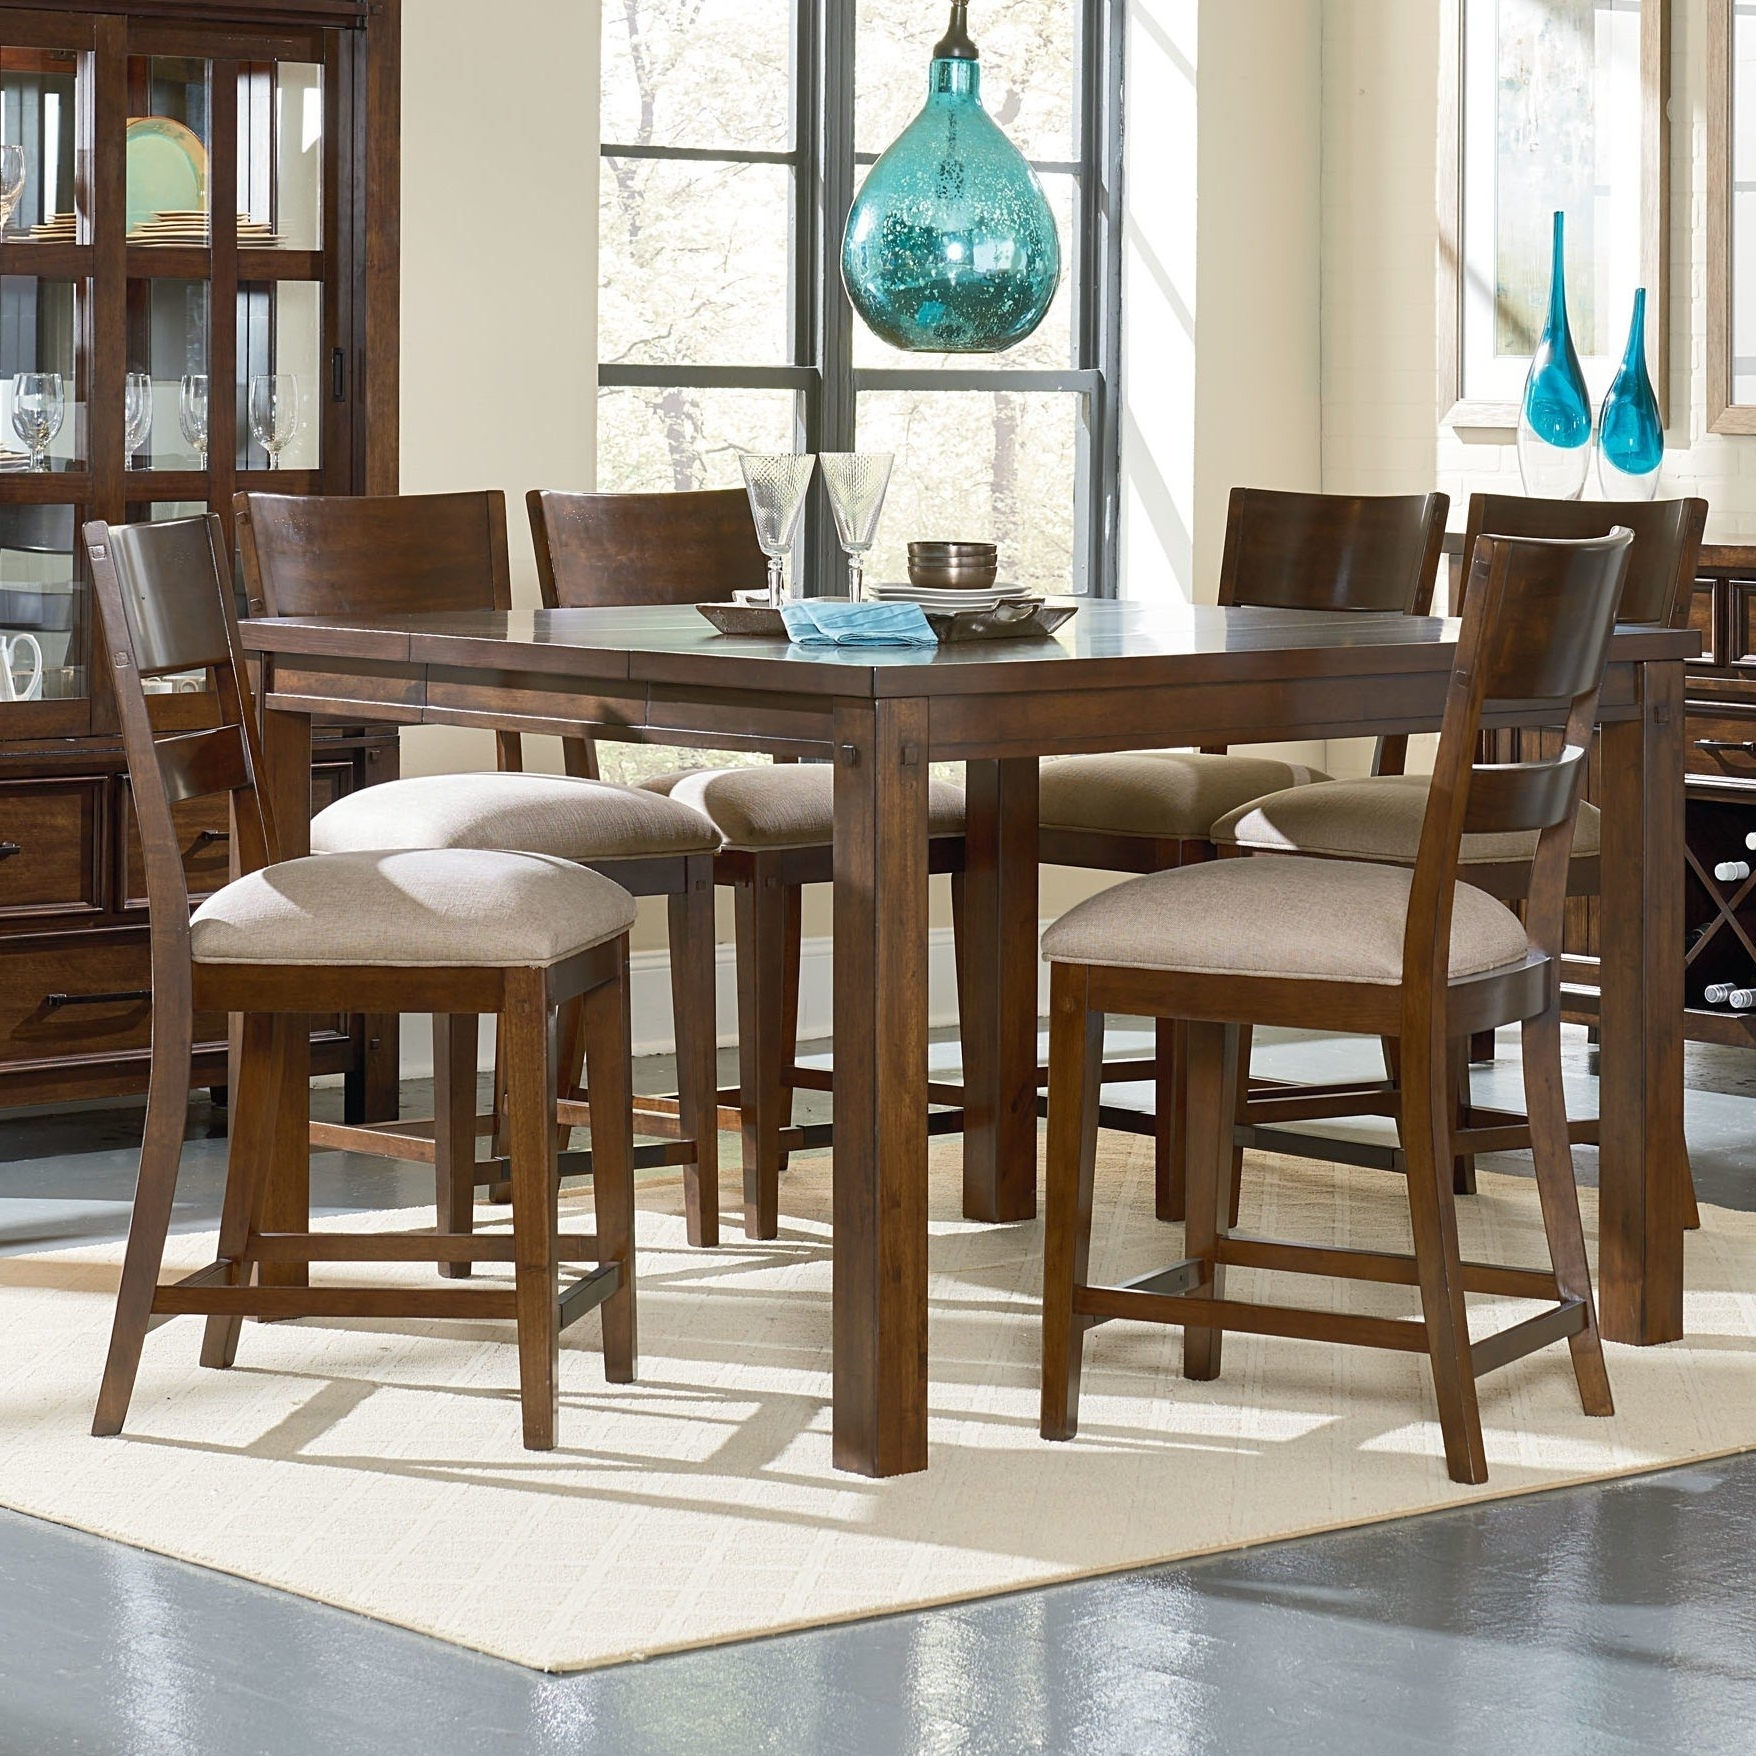 Most Recent Square Dining Table For 6 – Visual Hunt Regarding Parquet 6 Piece Dining Sets (Gallery 2 of 25)